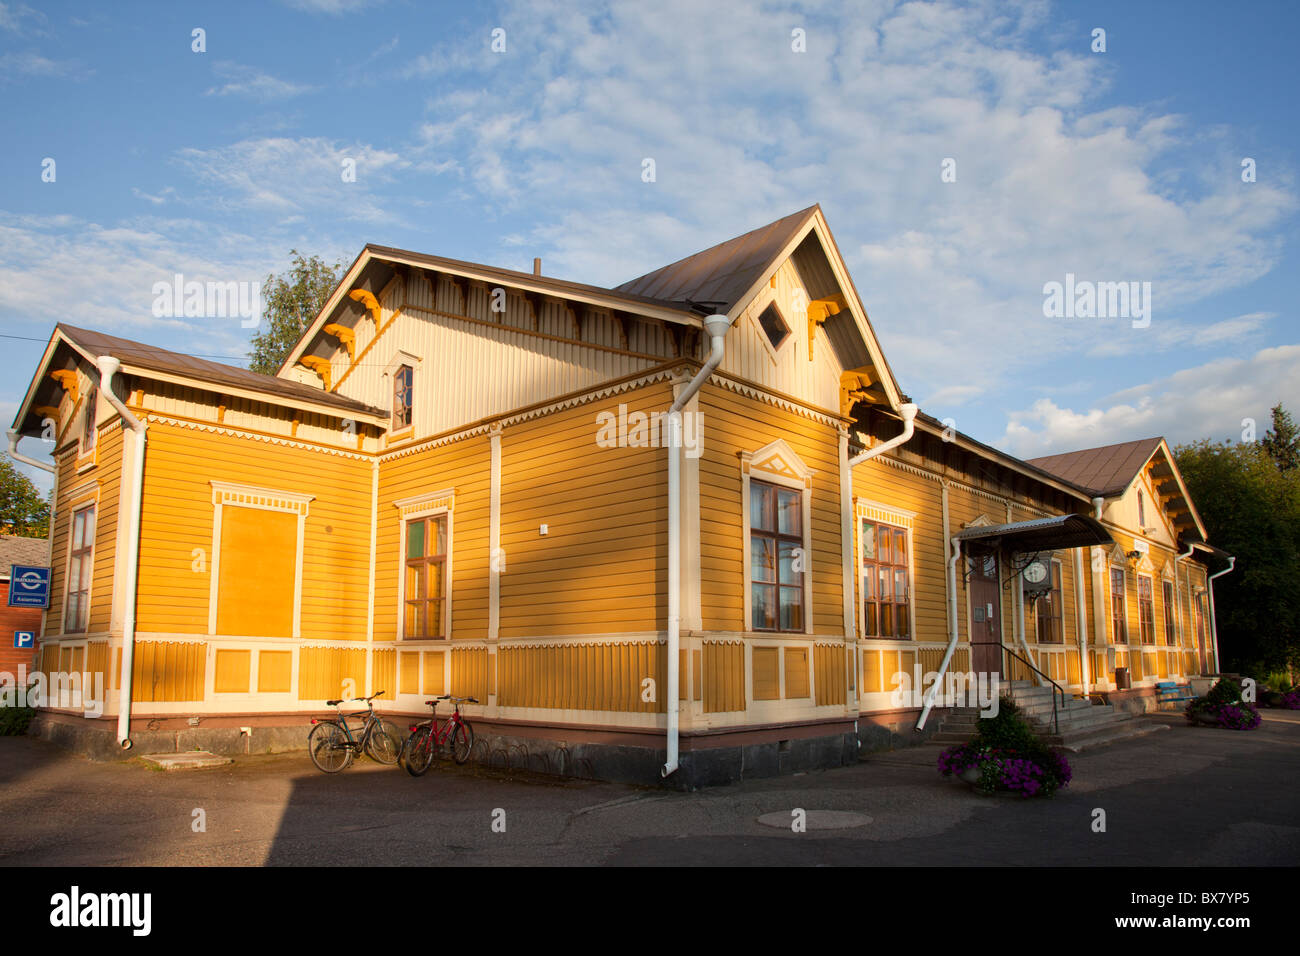 Wooden railway station building at Suonenjoki Finland - Stock Image